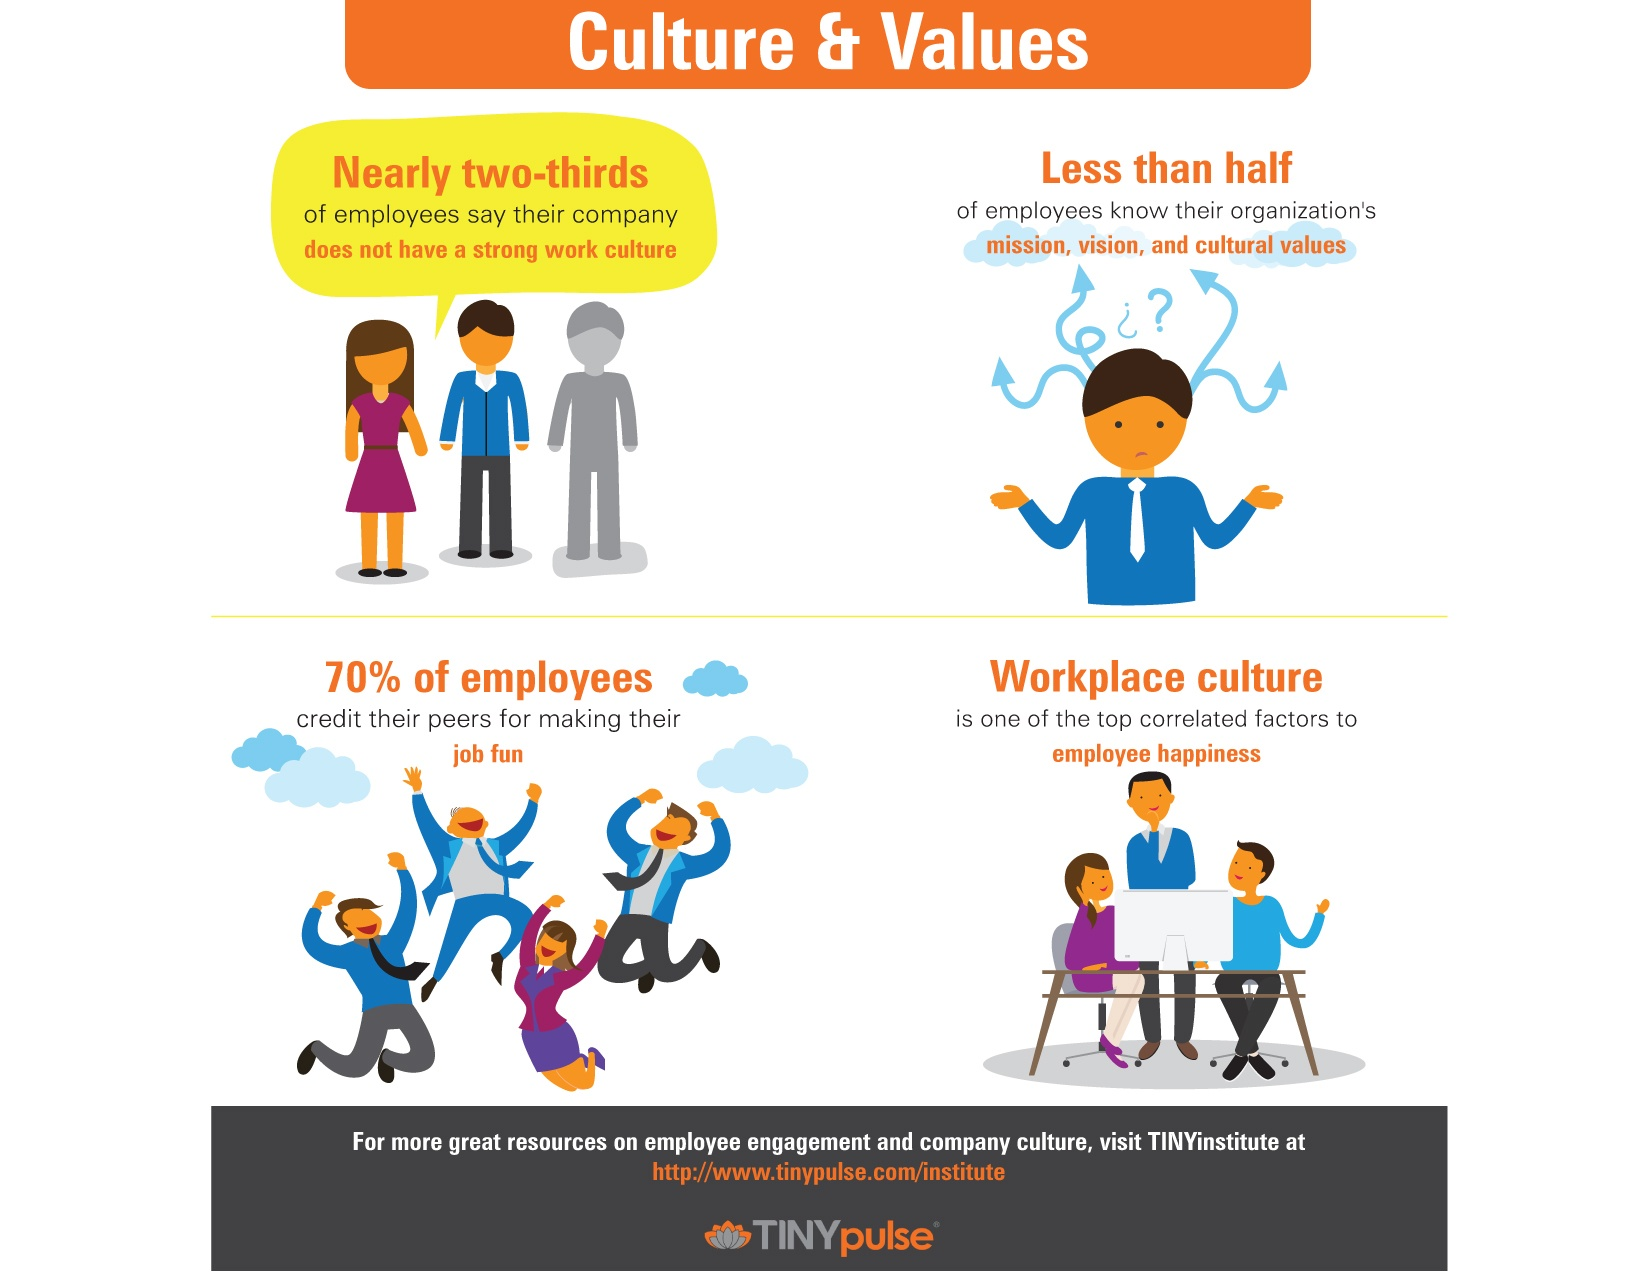 TINYinstitute Company Culture & Values Infographic